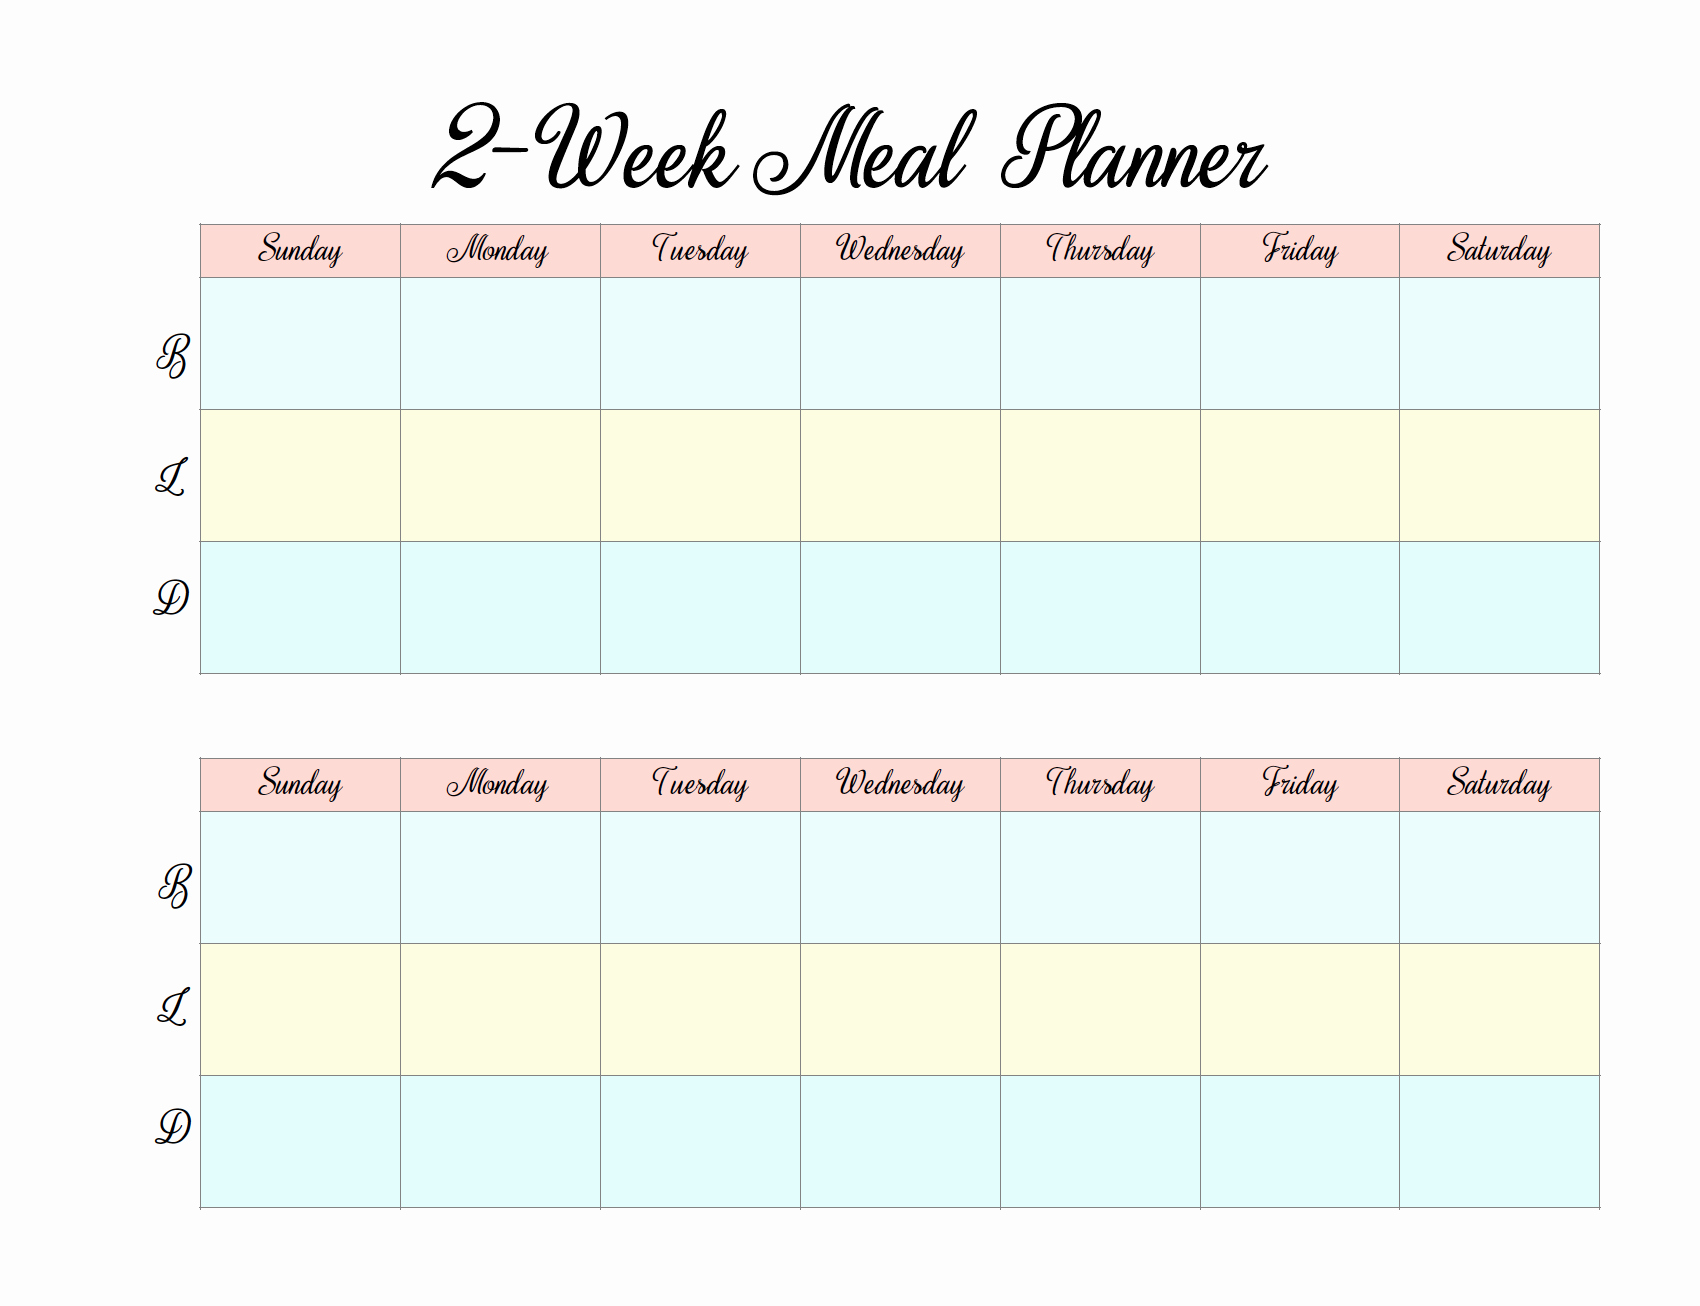 Two Week Meal Planner Template Inspirational 2 Week Meal Plan Template